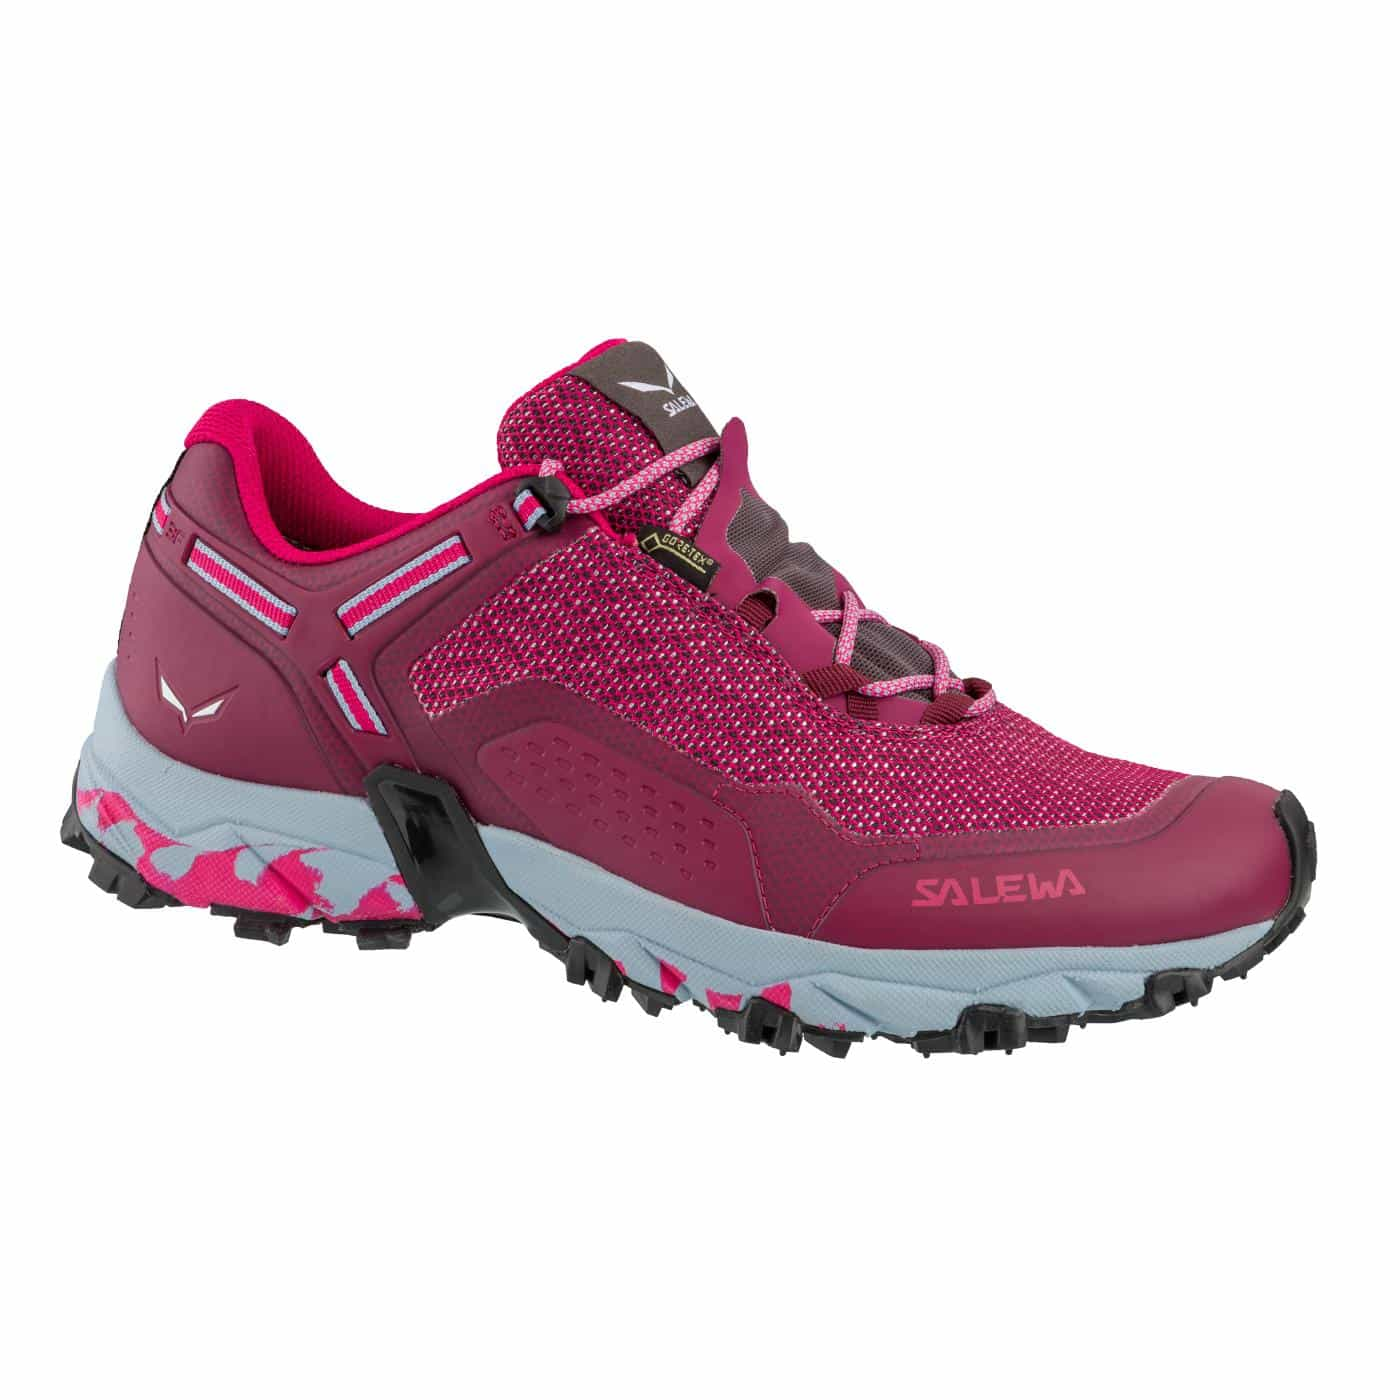 Salewa-Speed Beat GTX - Women's